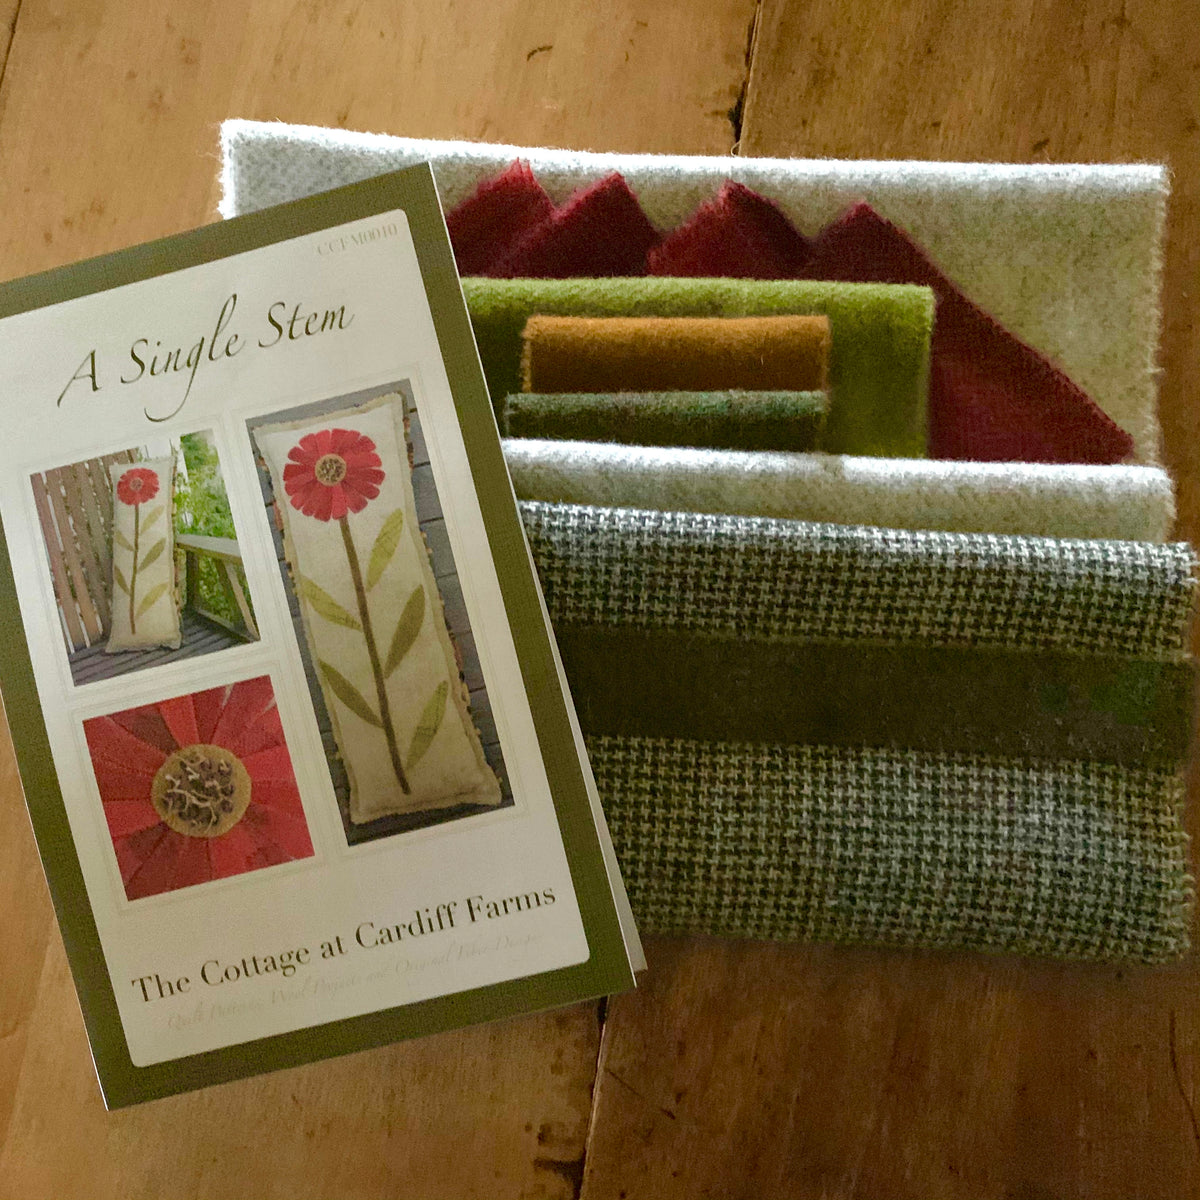 The Cottage at Cardiff Farms - A Single Stem Bench Pillow Wool Kit